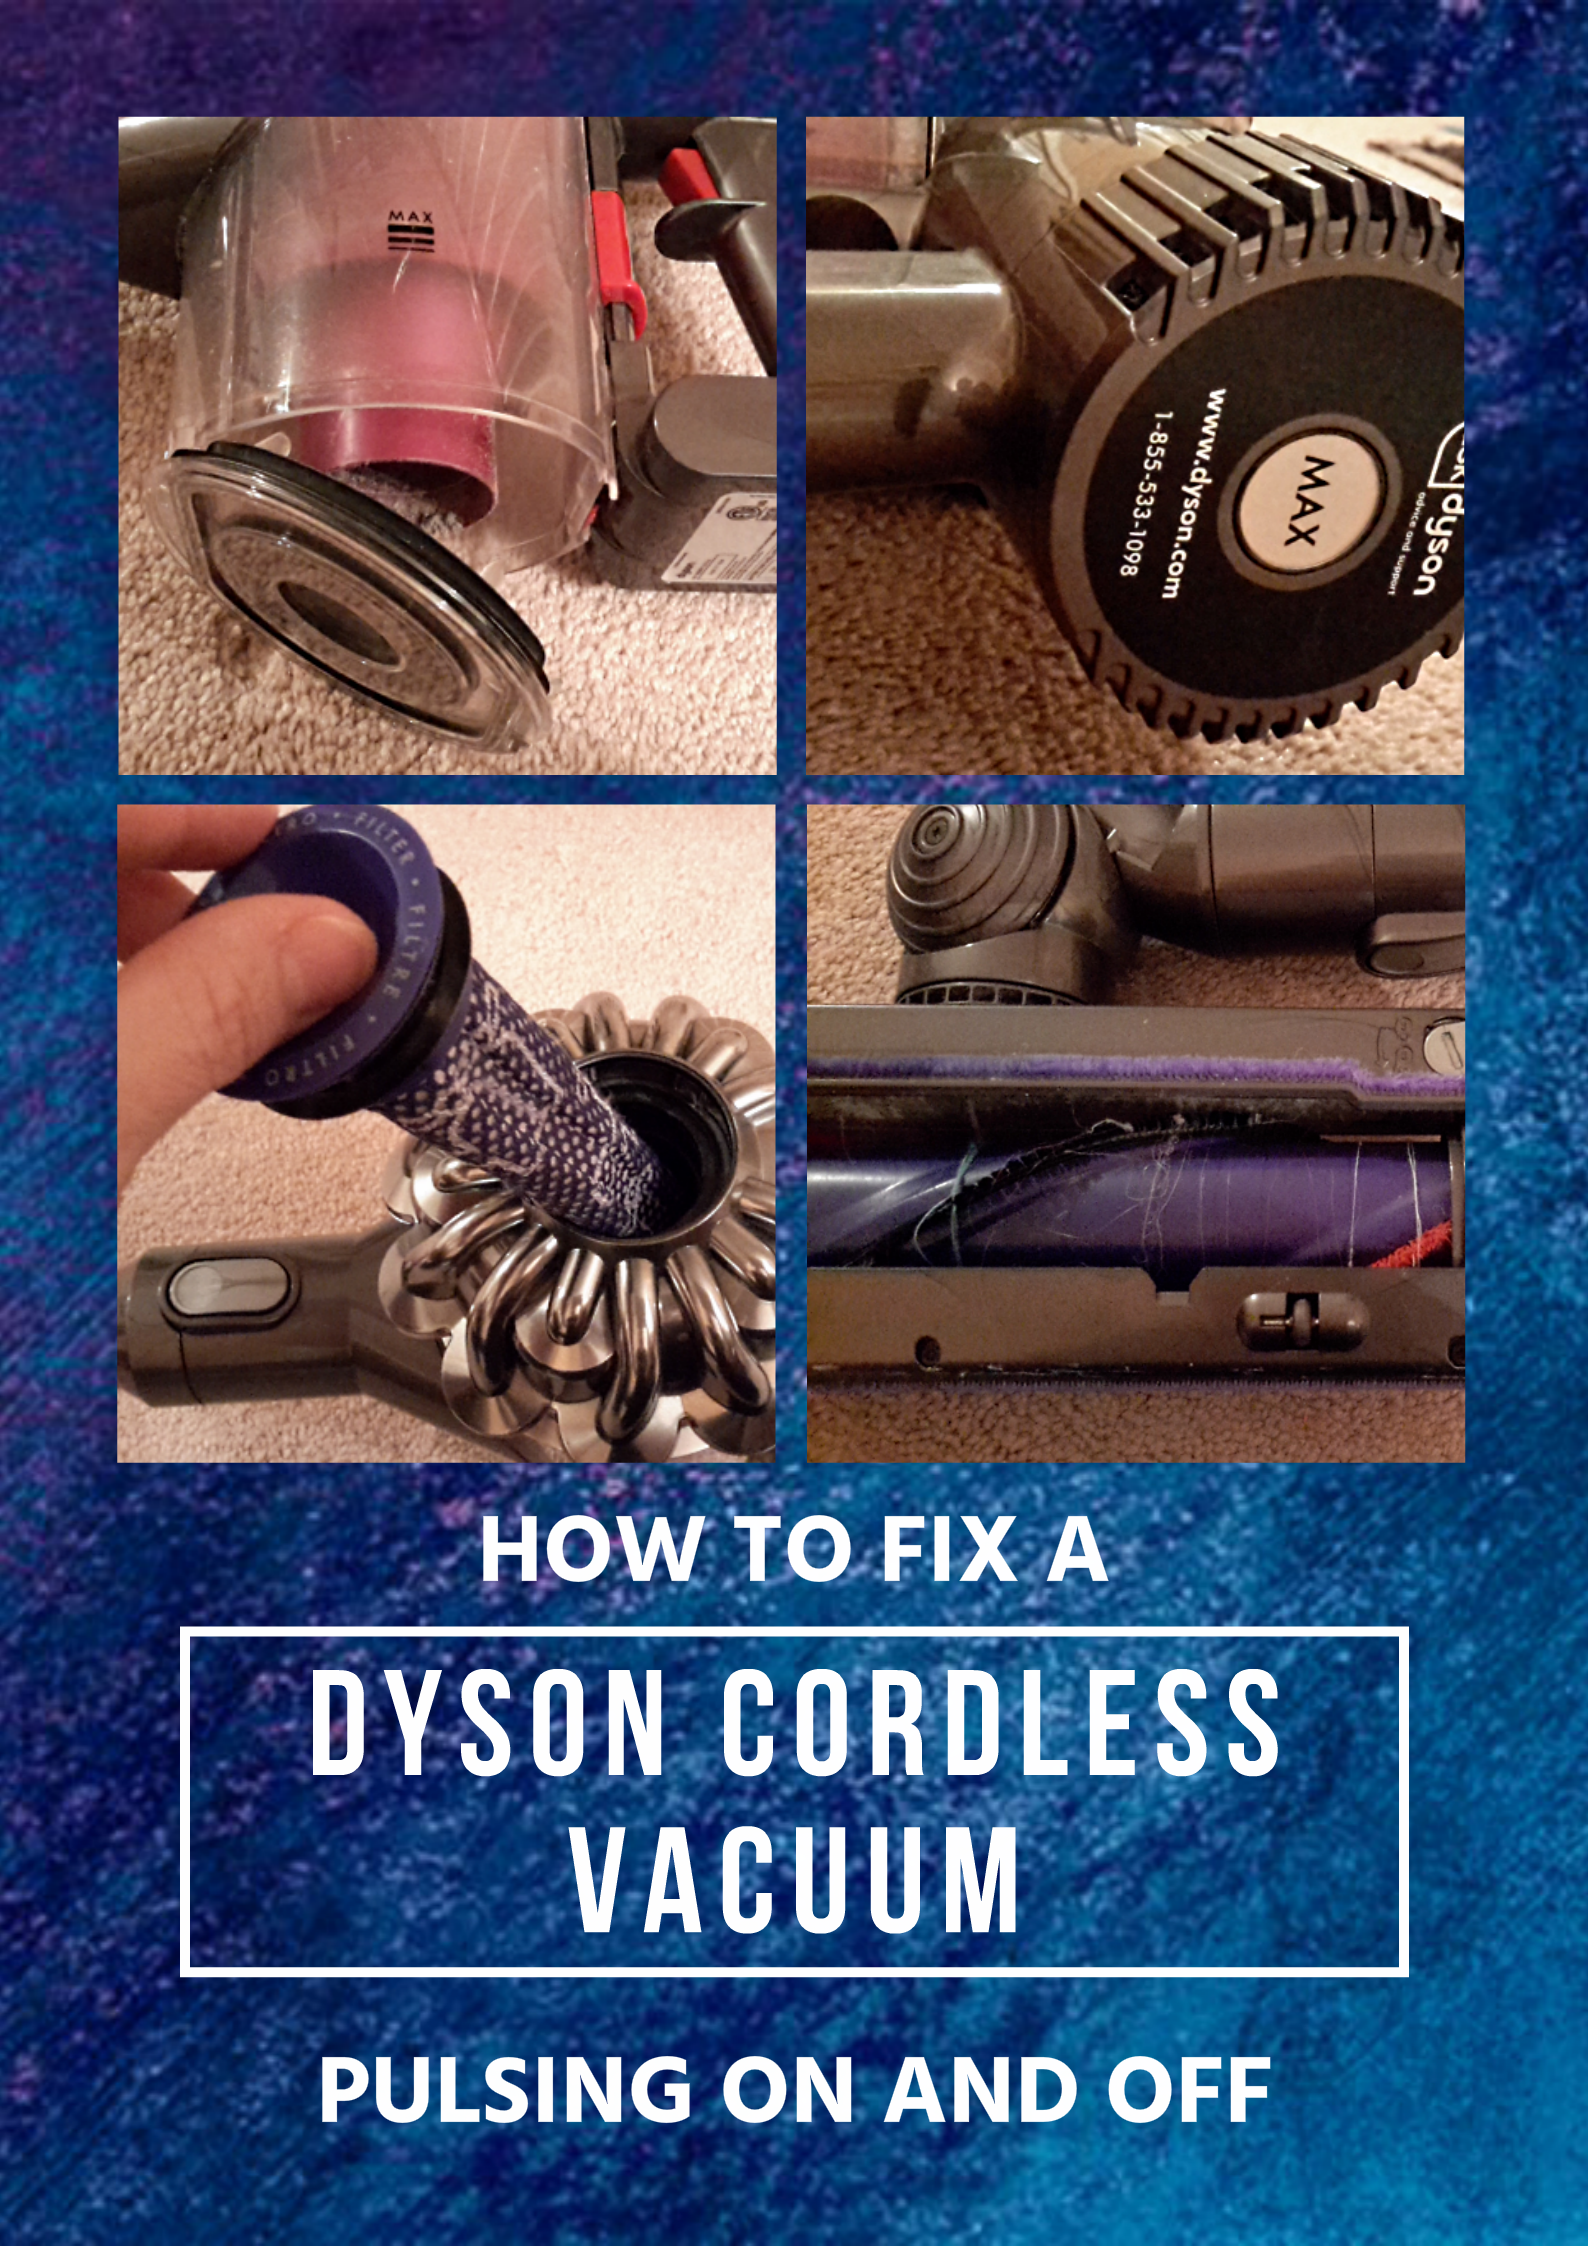 How to Fix Your Dyson Cordless Vacuum Pulsating Off and On